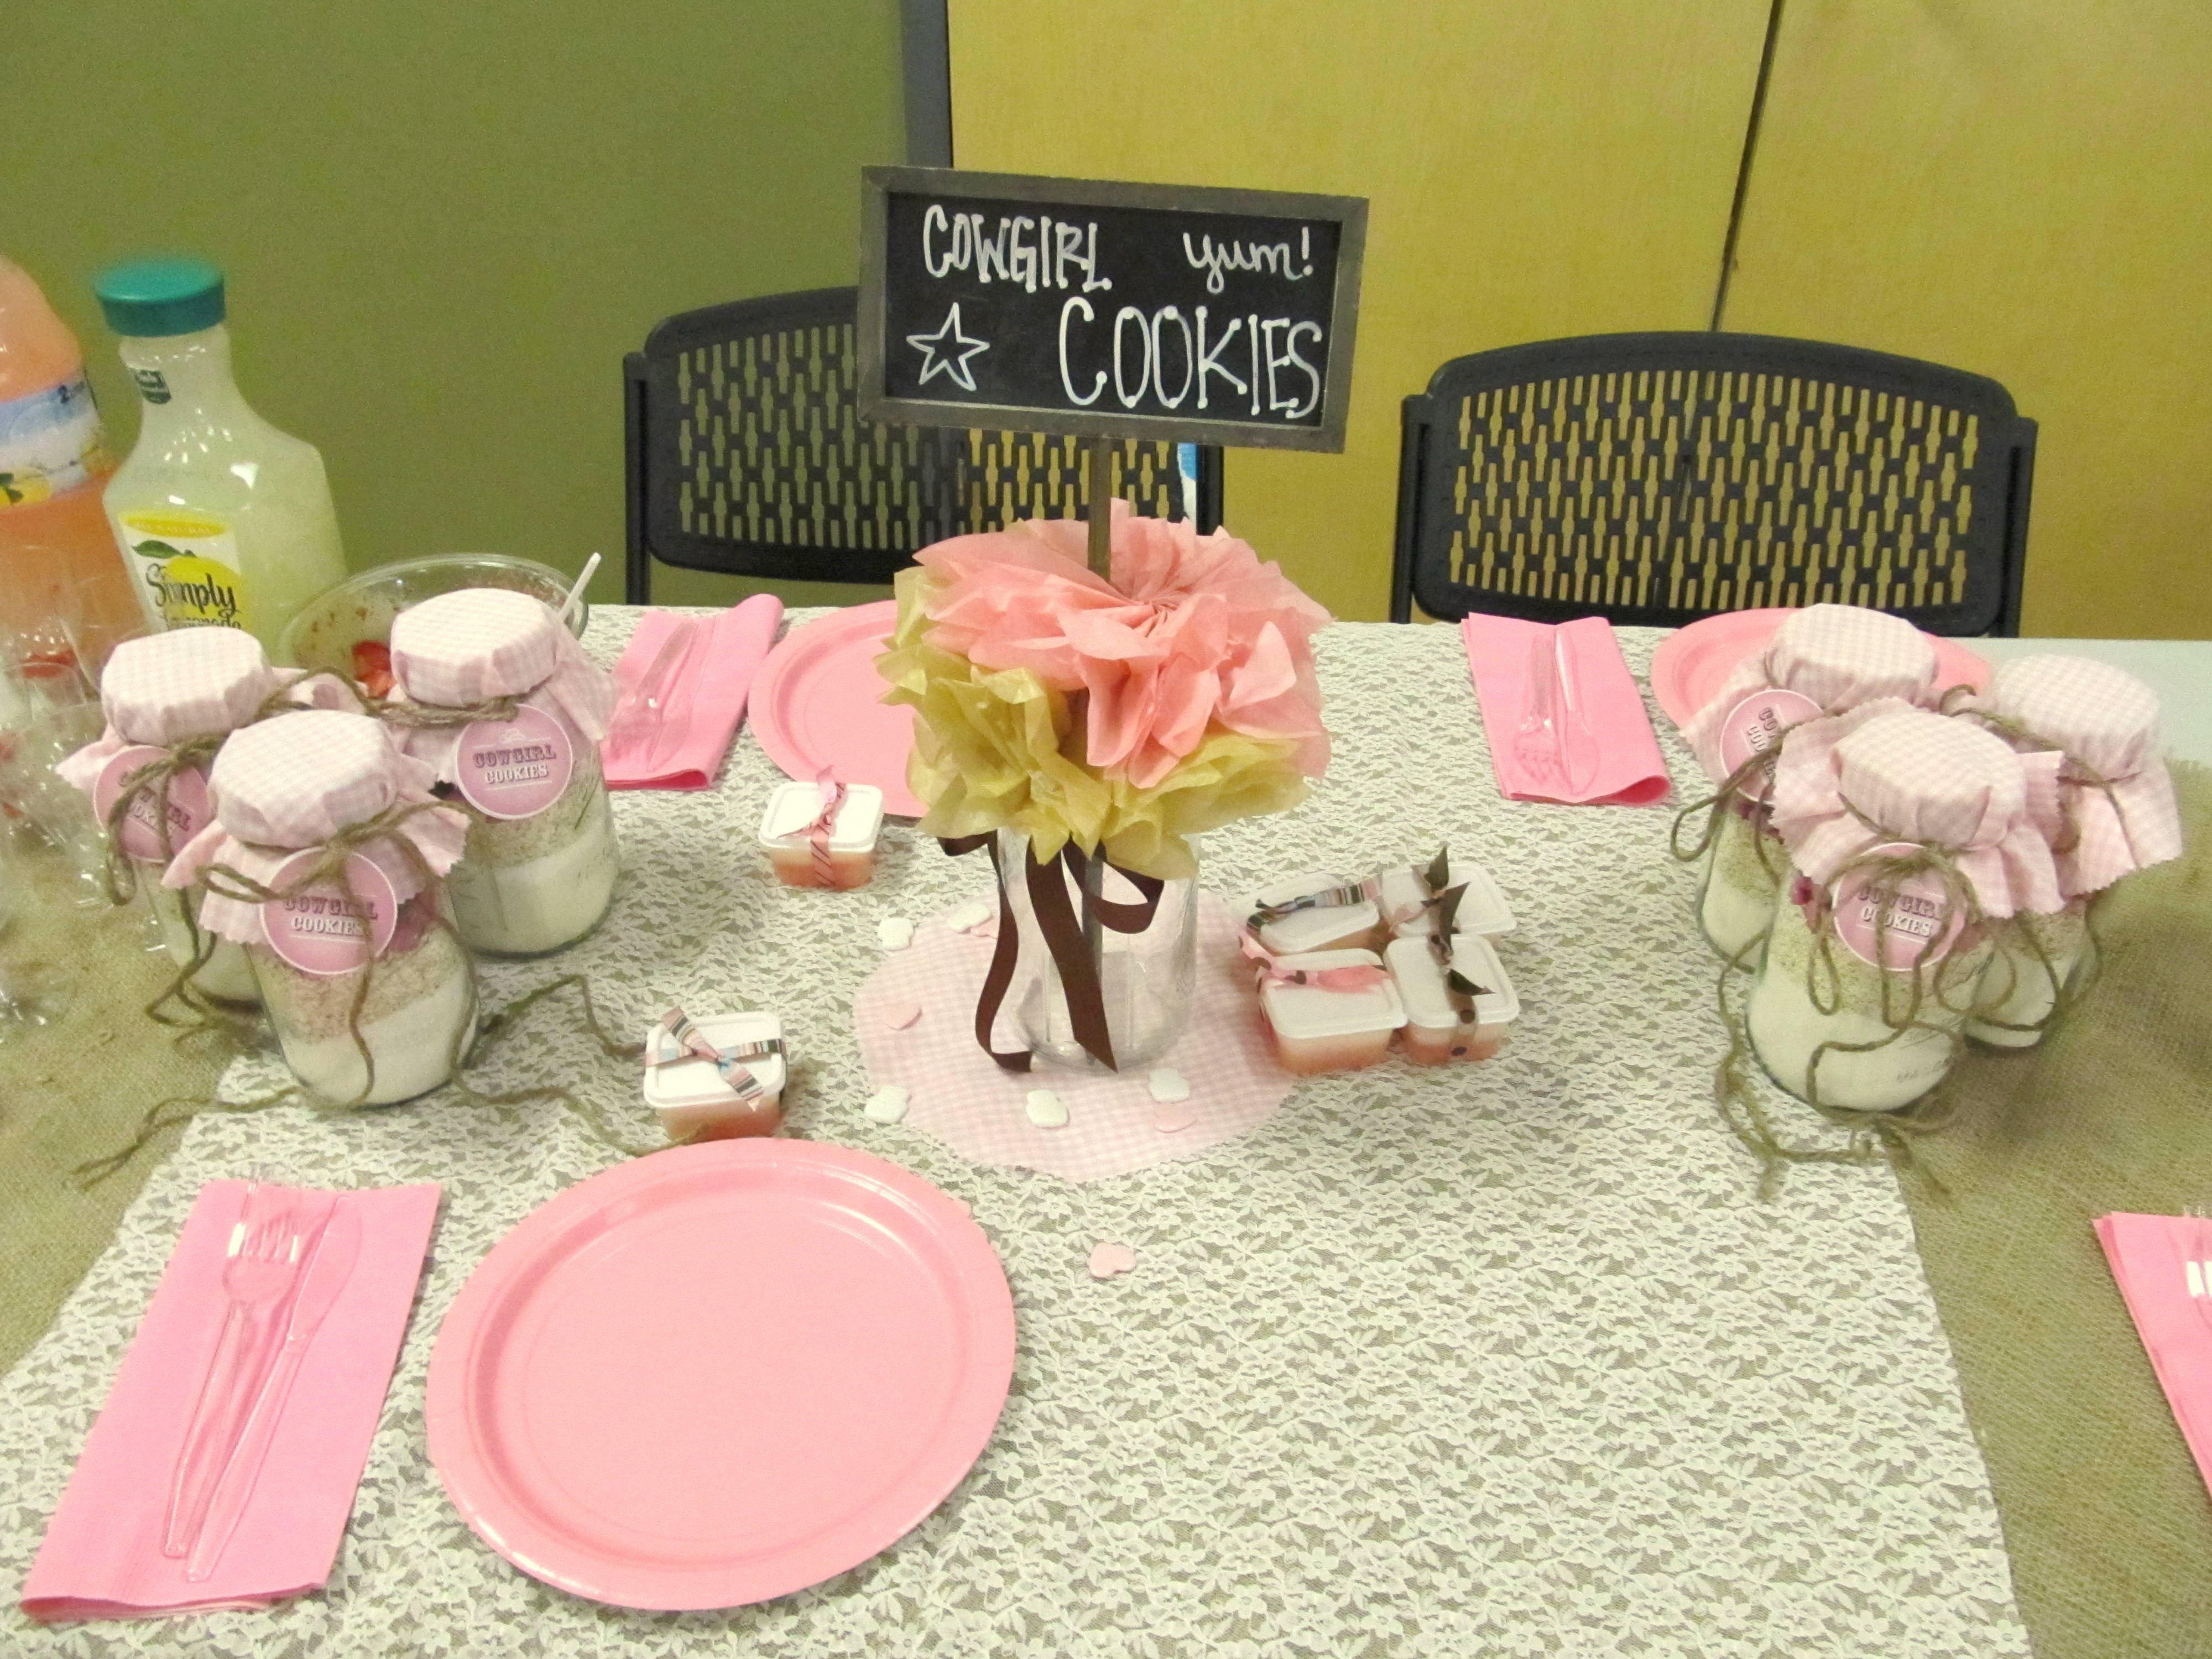 10 Fantastic Country Themed Bridal Shower Ideas wedding wednesday cowgirl themed bridal shower events to celebrate 2020